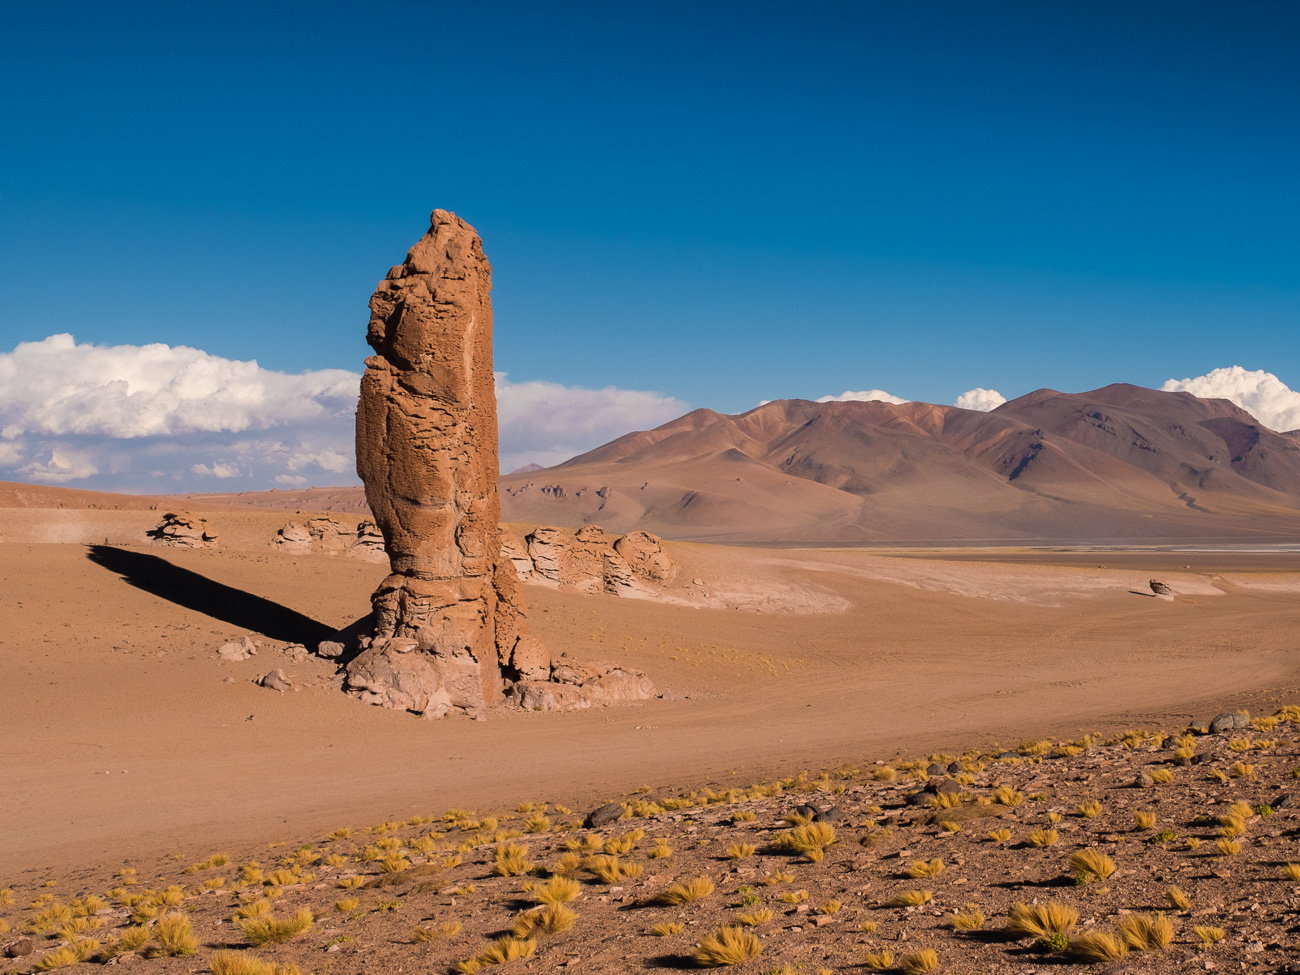 Hight pillar of stone in a orange desert